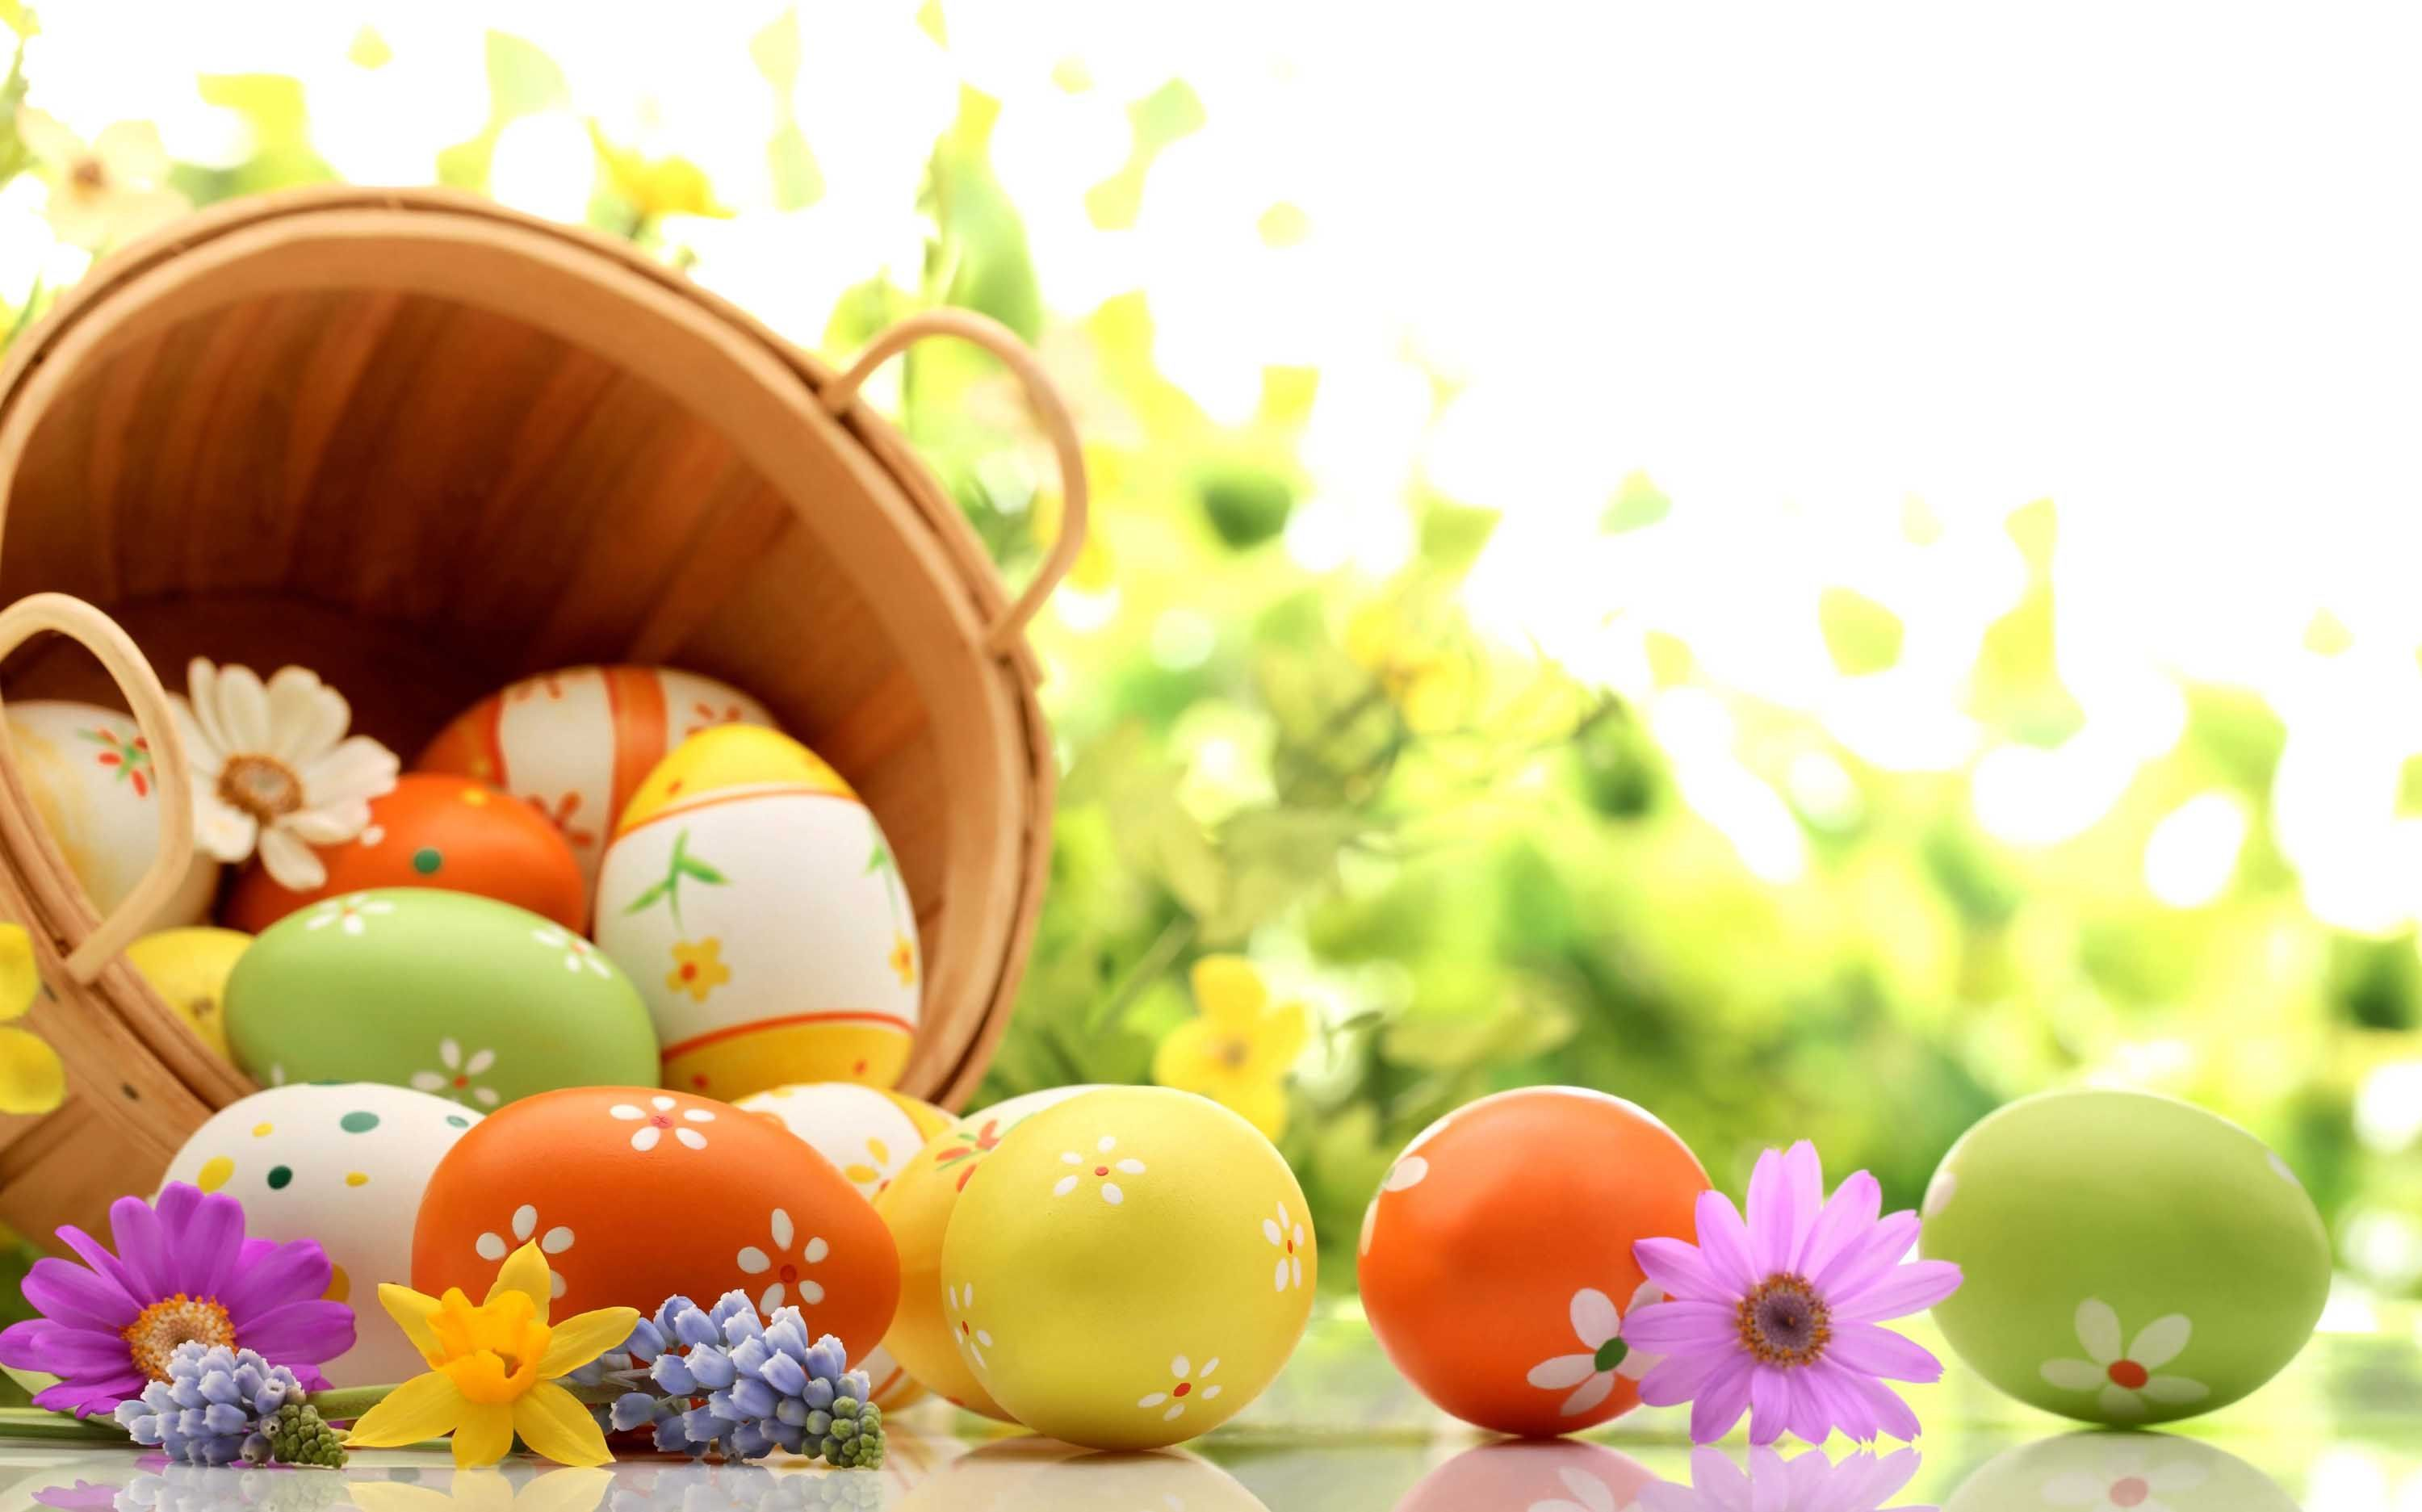 Holidays easter basket of eggs on green background wallpaper holidays easter basket of eggs on green background wallpaper 5950x3715 cool pc wallpapers negle Gallery